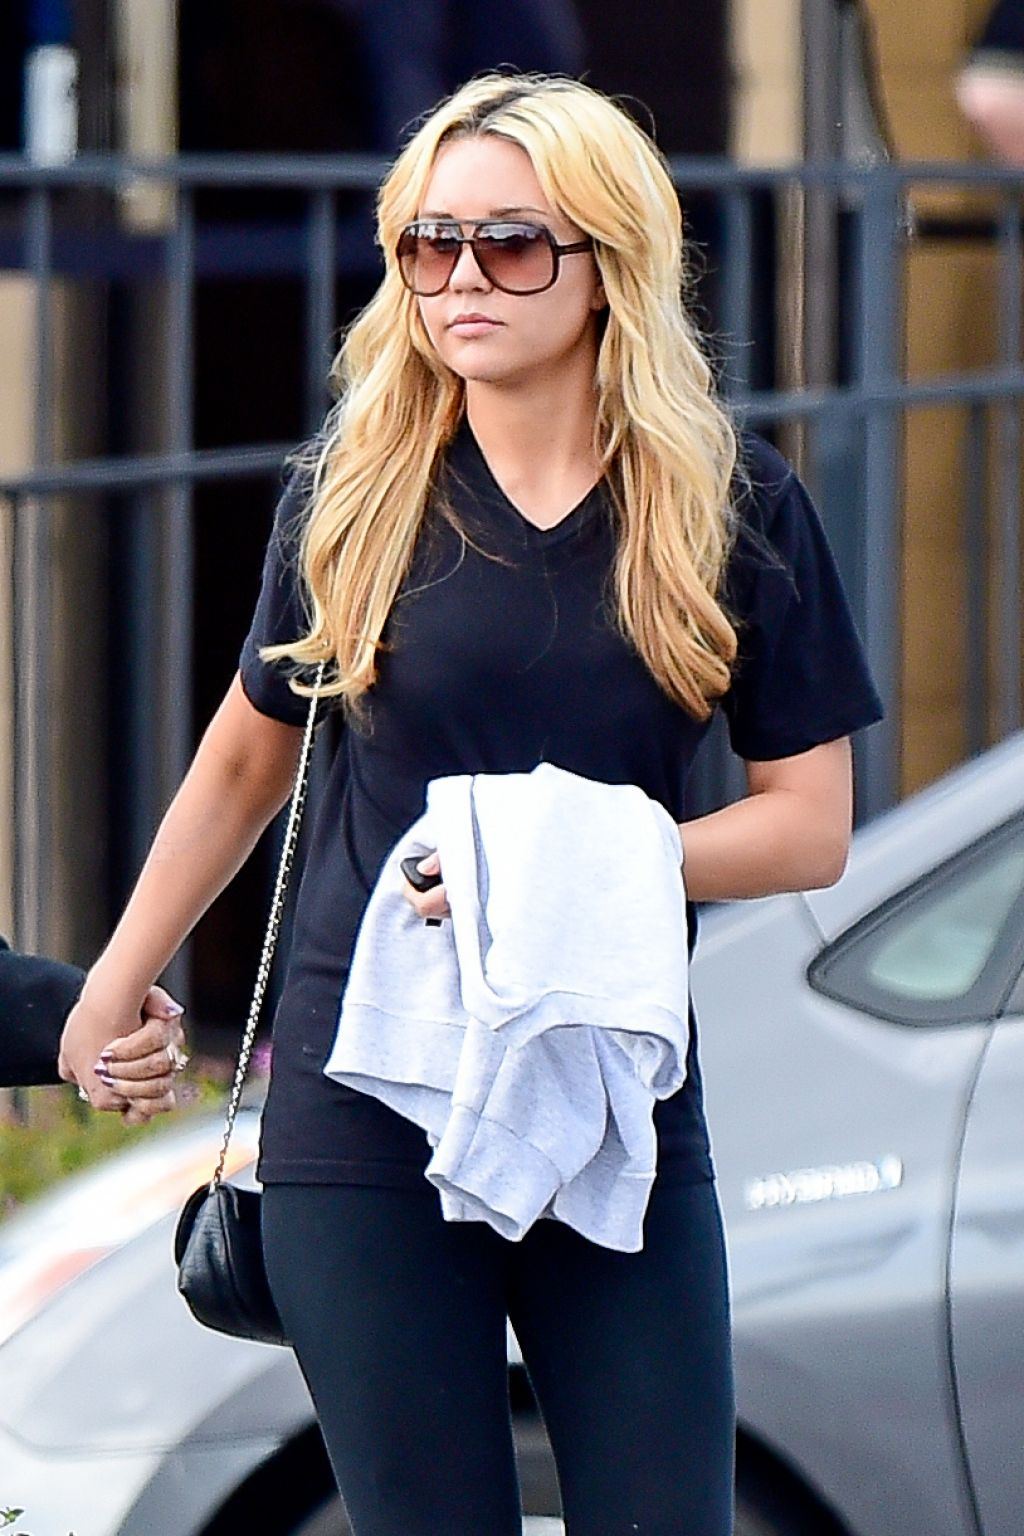 Amanda Bynes Casual Style At The Regency Theatre In Los